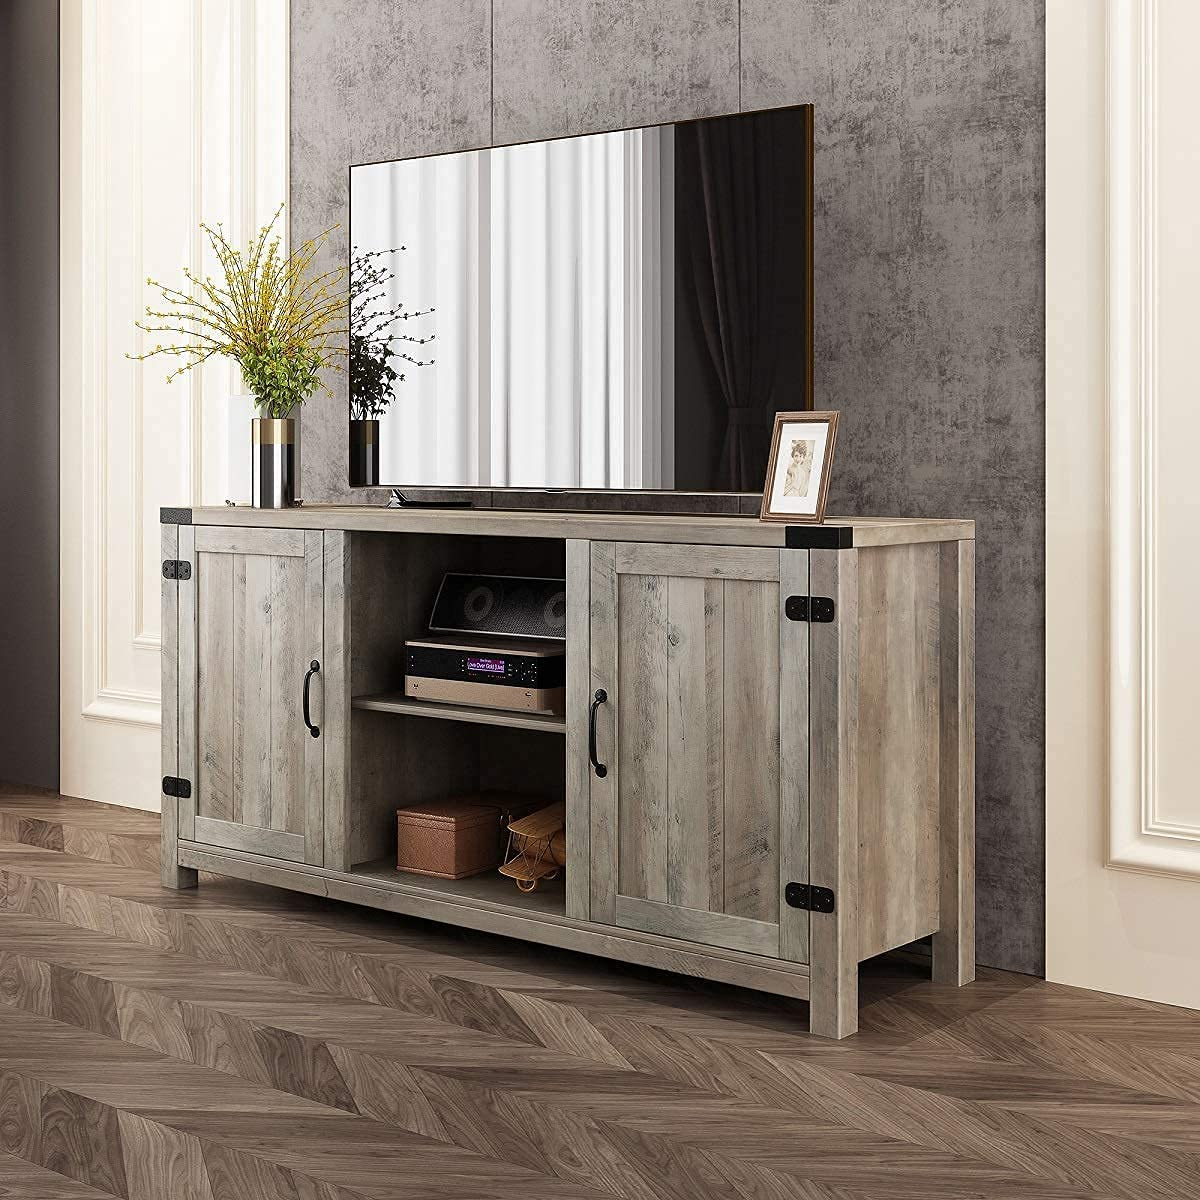 BAOLEJIA Tall TV Stand for 65 inch tv, TV Console Table in Rustic Gray Wash, TV Entertainment Center, Television Stands, 59 Inch